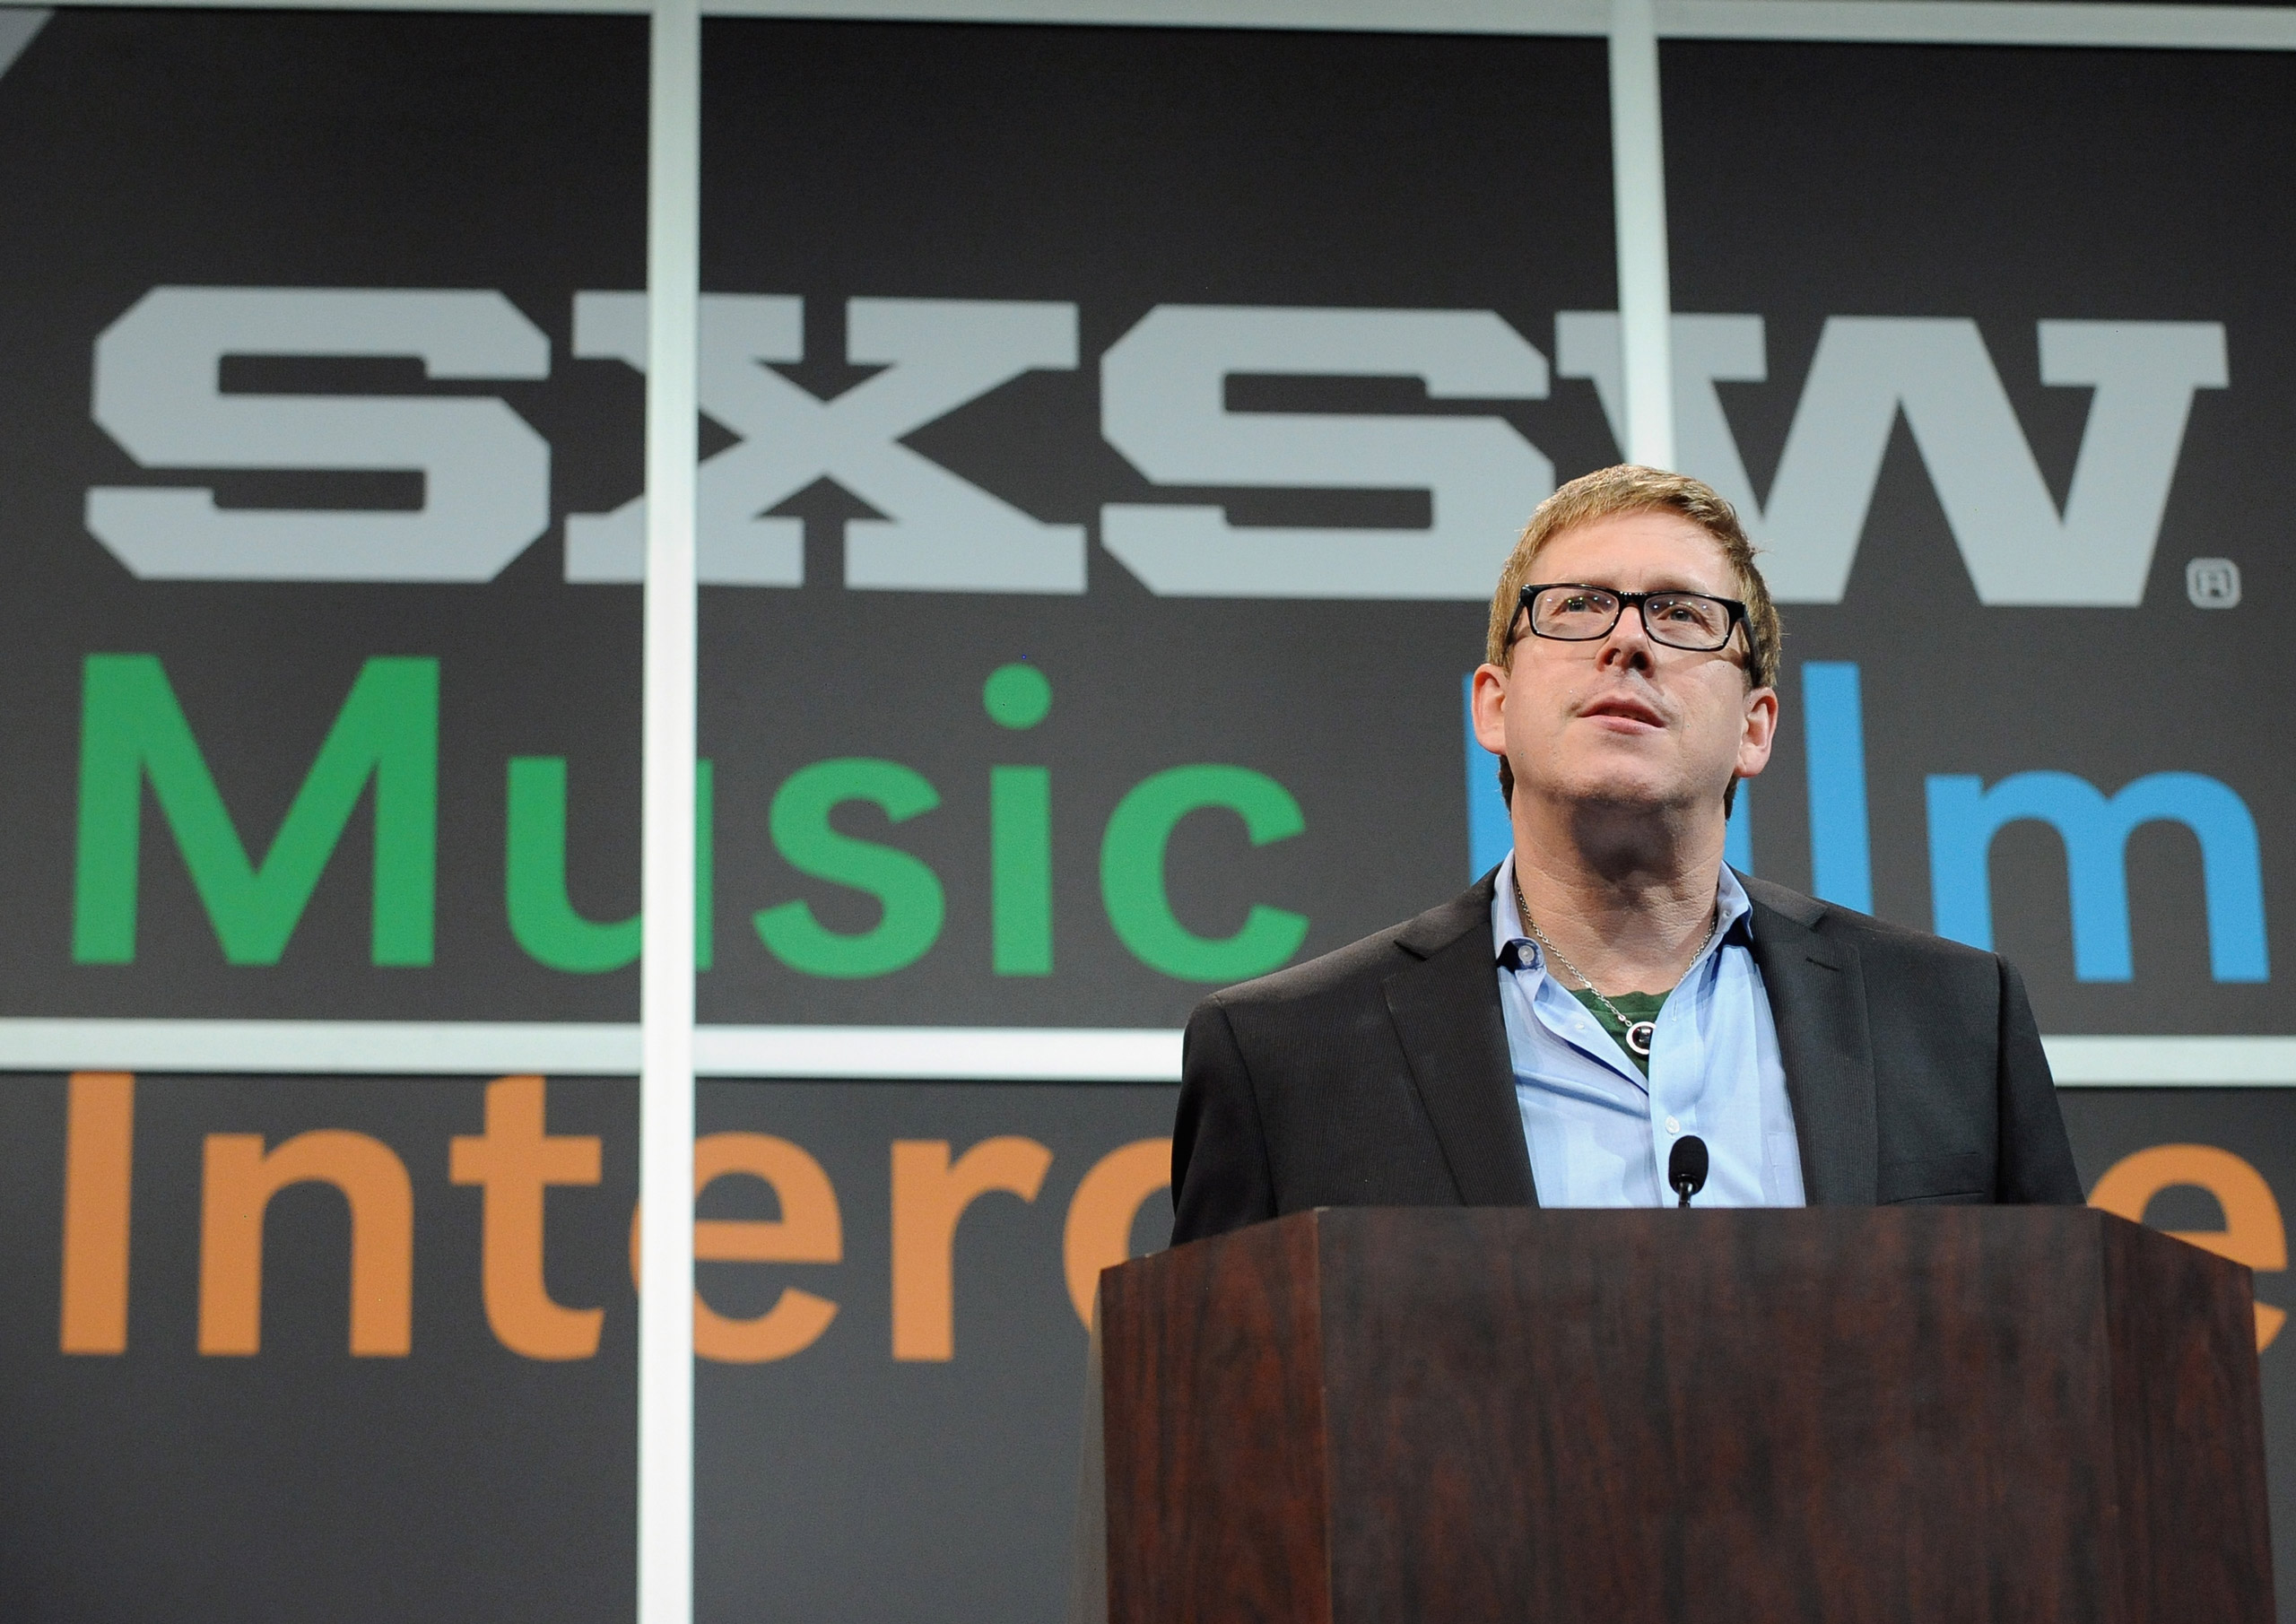 Hugh Forrest, SXSW Interactive's Director speaks onstage at Bruce Sterling Closing Remarks during the 2014 SXSW Music, Film + Interactive Festival in Austin on March 11, 2014.